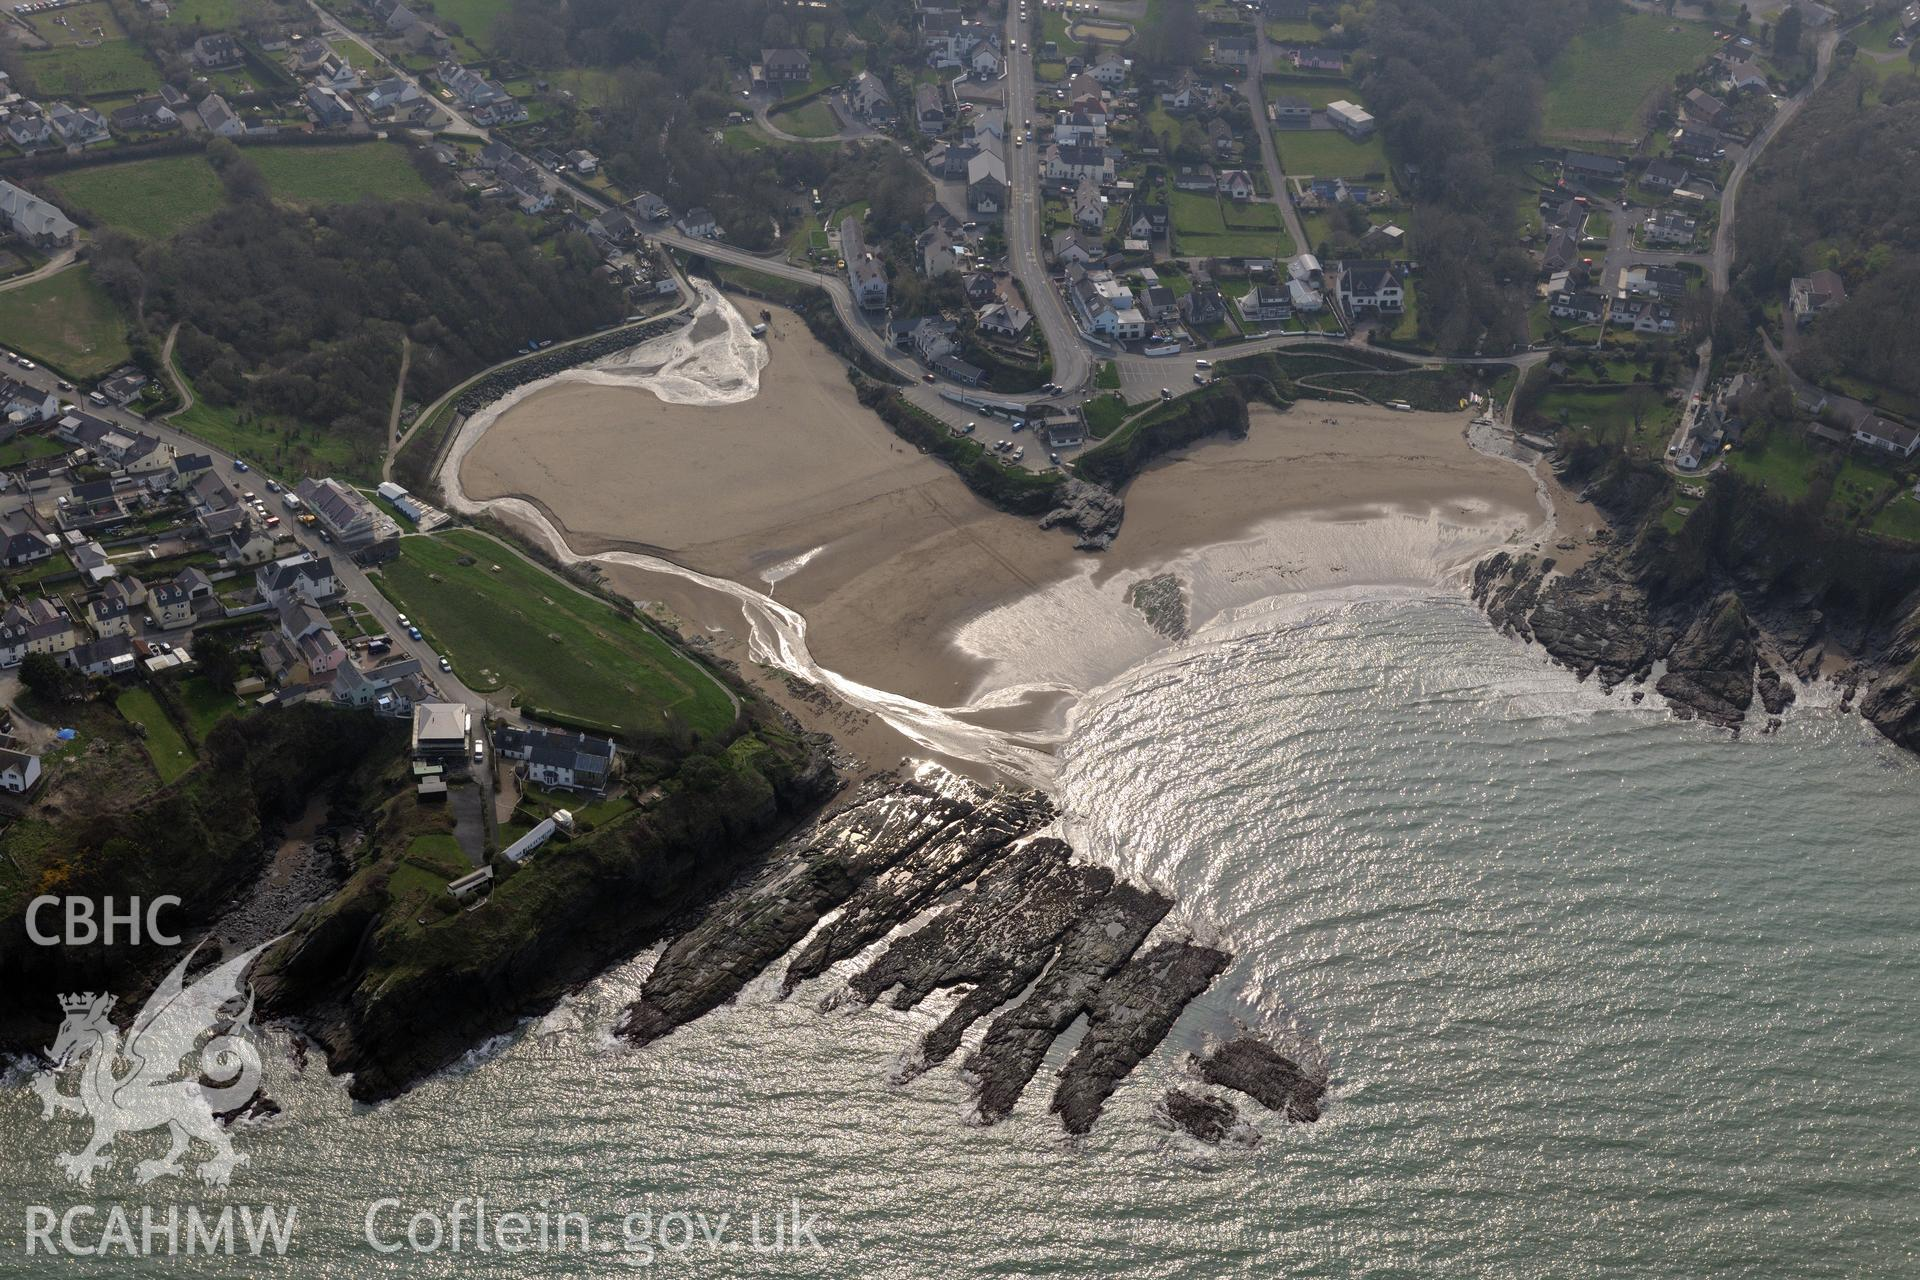 Aerial photography of Aberporth village taken on 27th March 2017. Baseline aerial reconnaissance survey for the CHERISH Project. ? Crown: CHERISH PROJECT 2017. Produced with EU funds through the Ireland Wales Co-operation Programme 2014-2020. All material made freely available through the Open Government Licence.